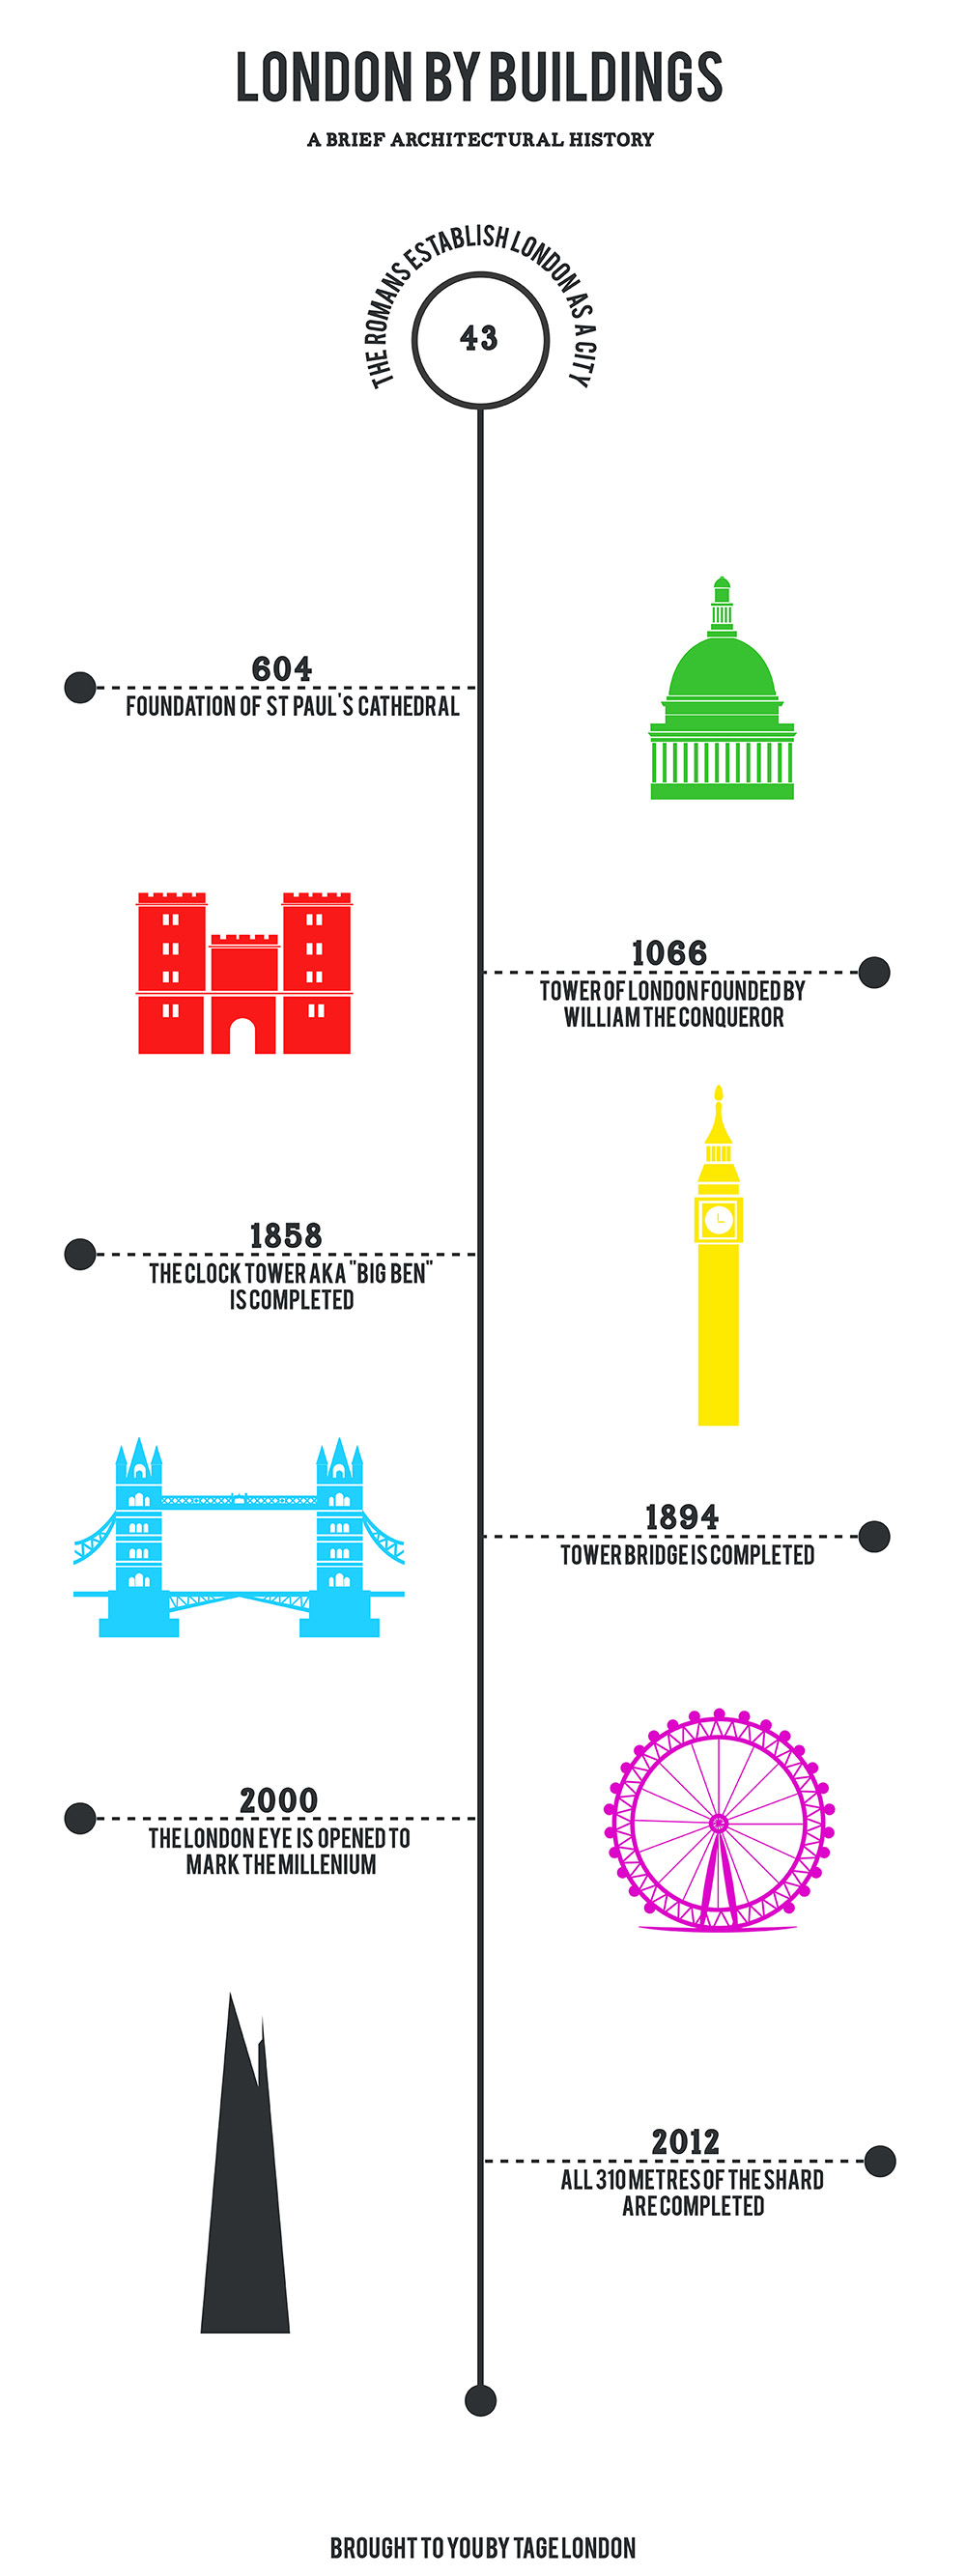 An Architectural History of London